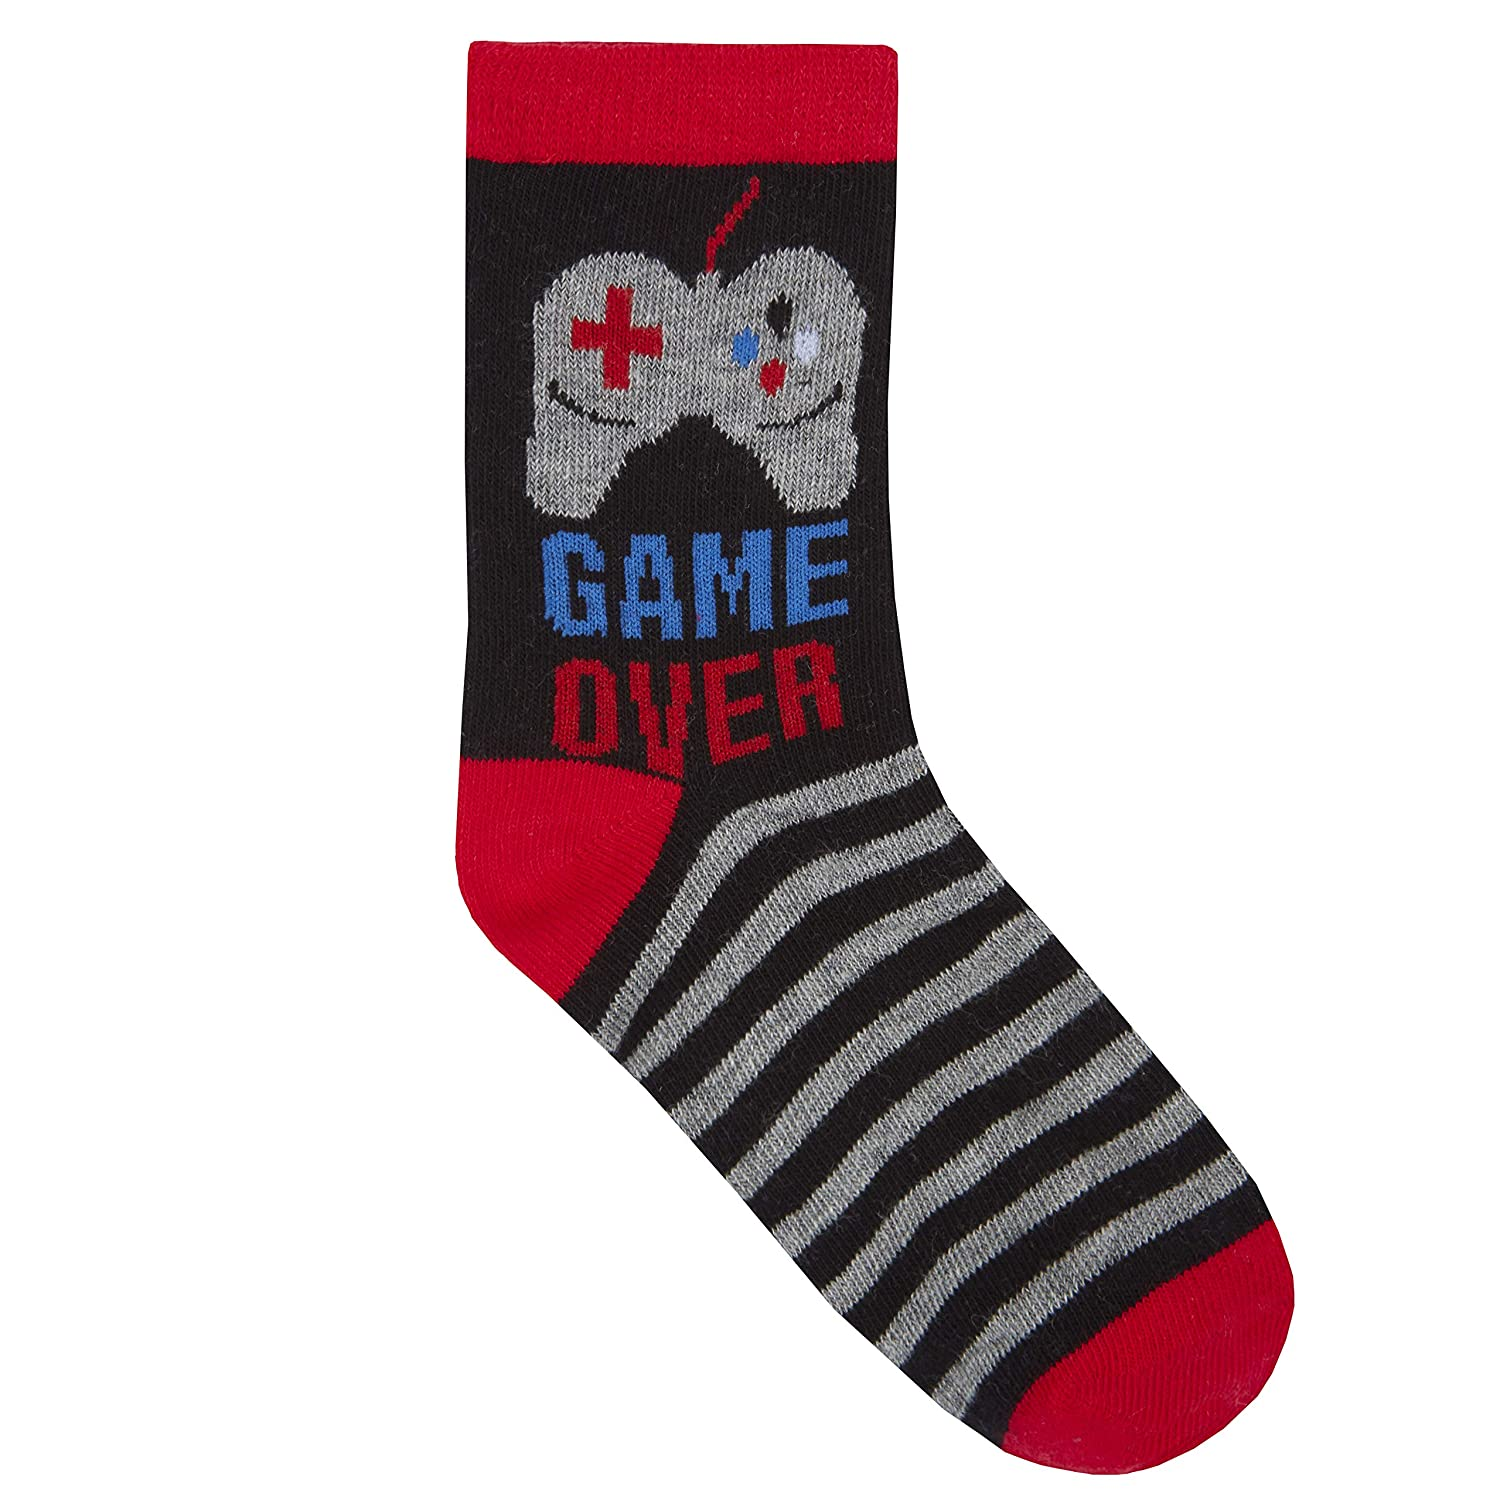 Boys Novelty Design Socks 3 pack in a great choice of designs